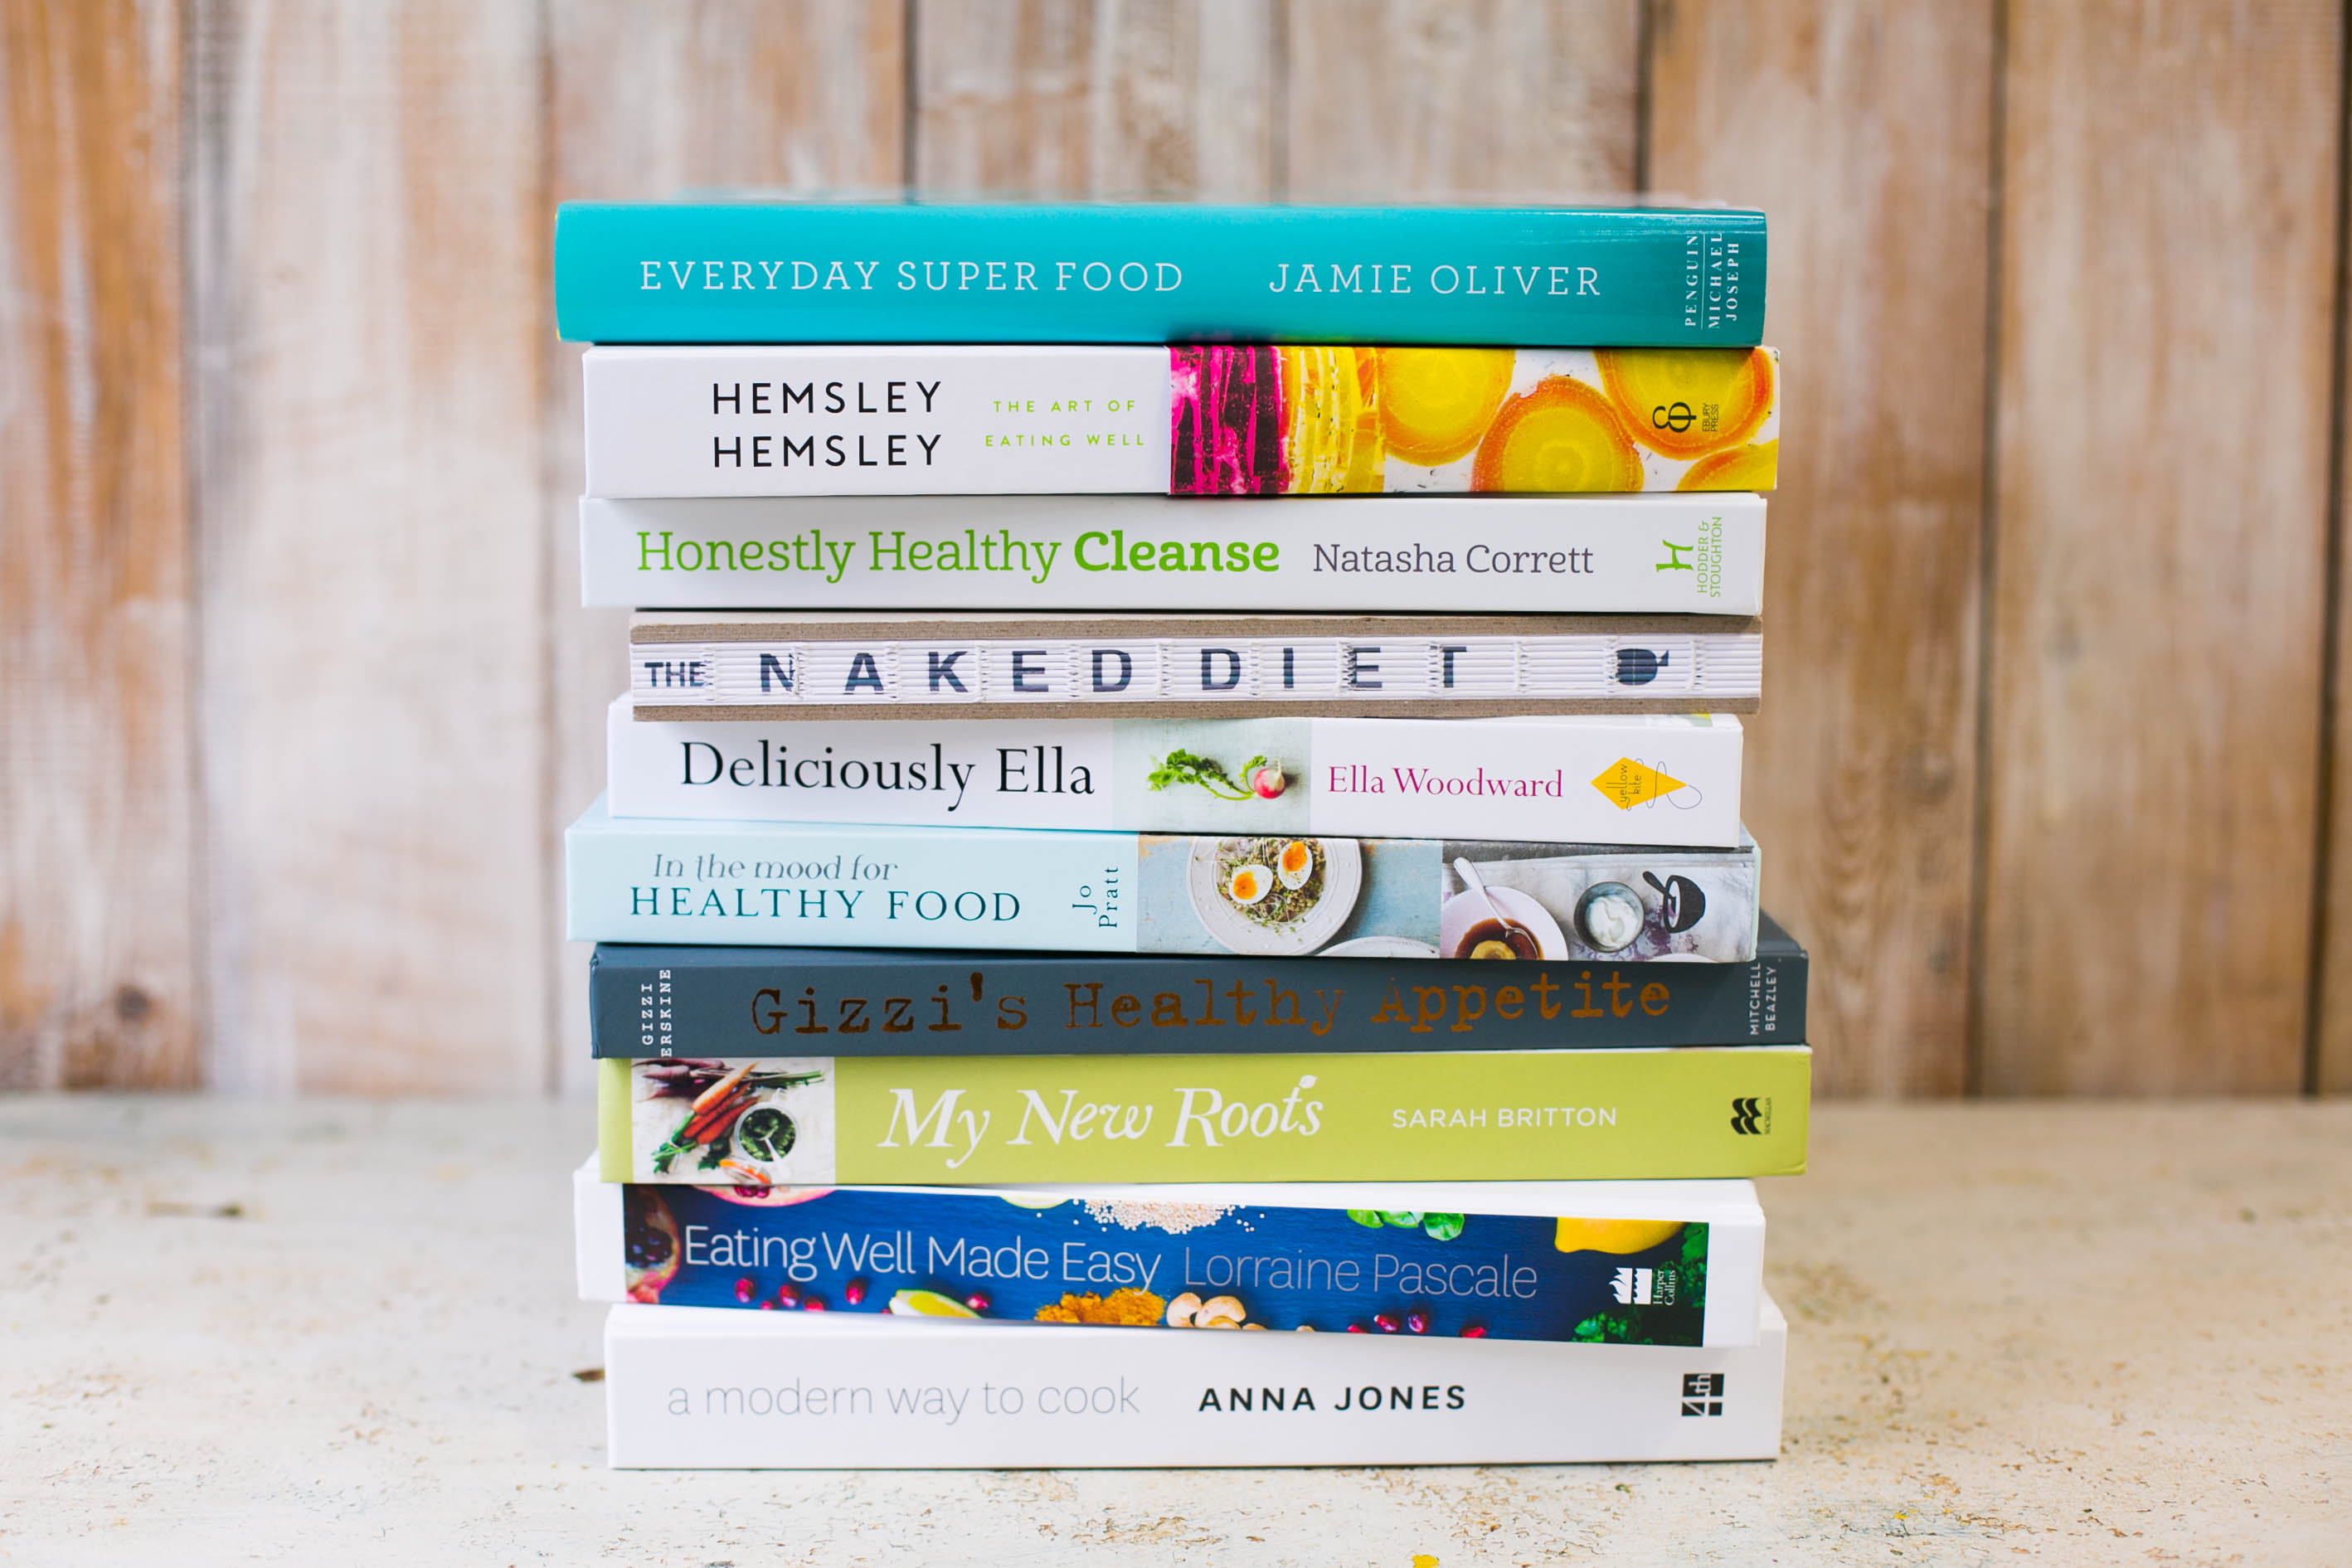 Healthy-eating cookbooks